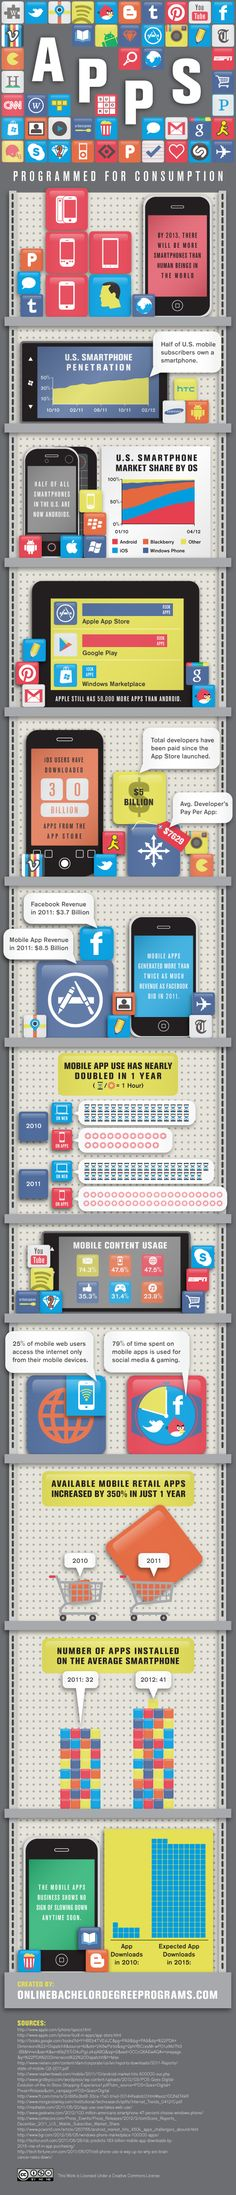 Everything You Ever Wanted to Know About the Smartphone Market  + Comment now    This smart infographic from developer Sarah Wenger provides the best one-shot overview of the smartphone market I've seen so far.